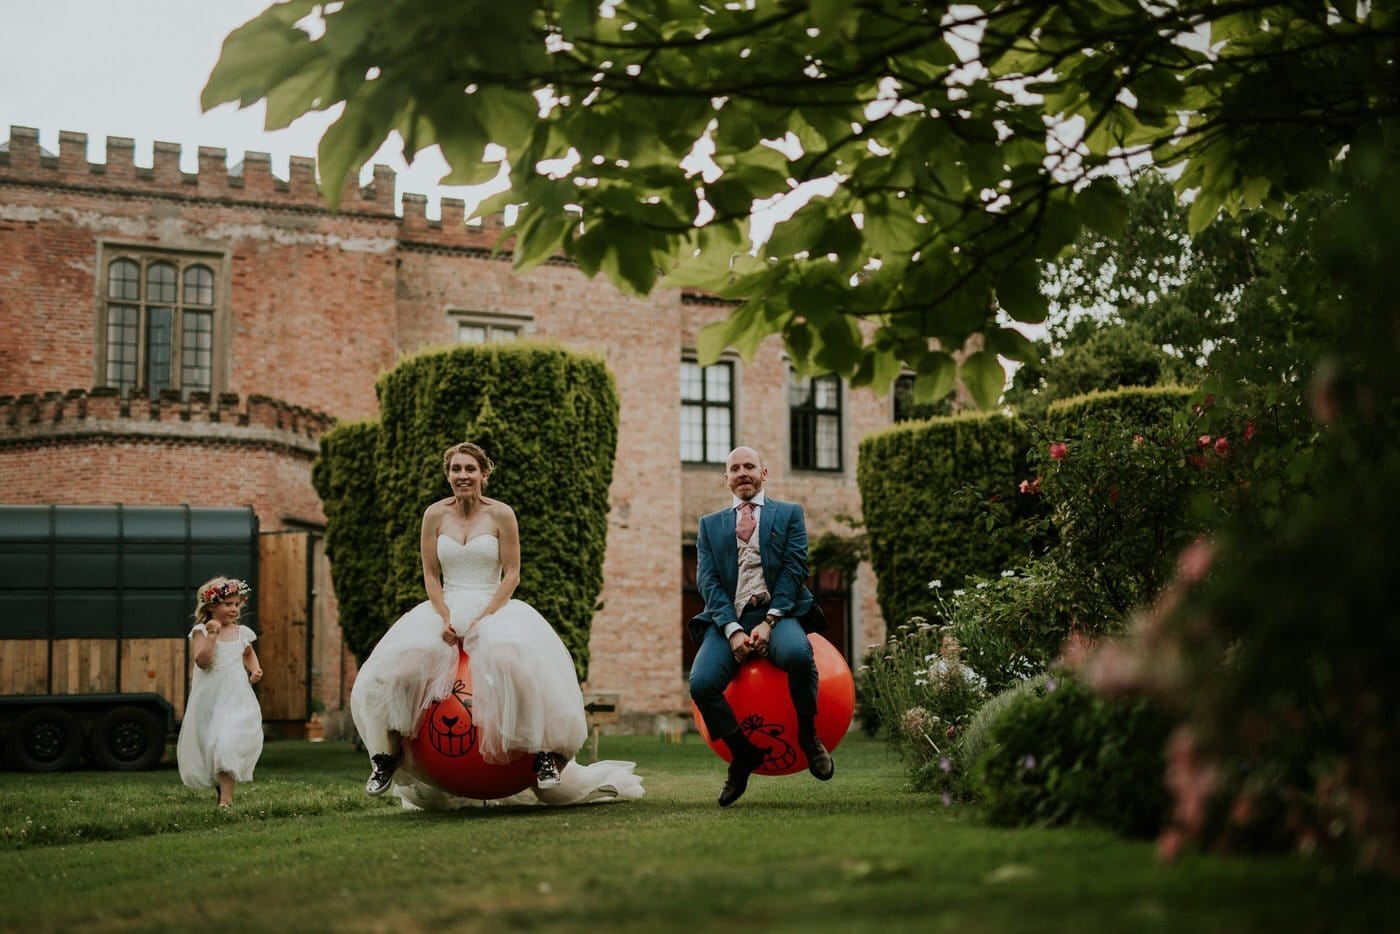 A bride and groom bouncing on space hoppers